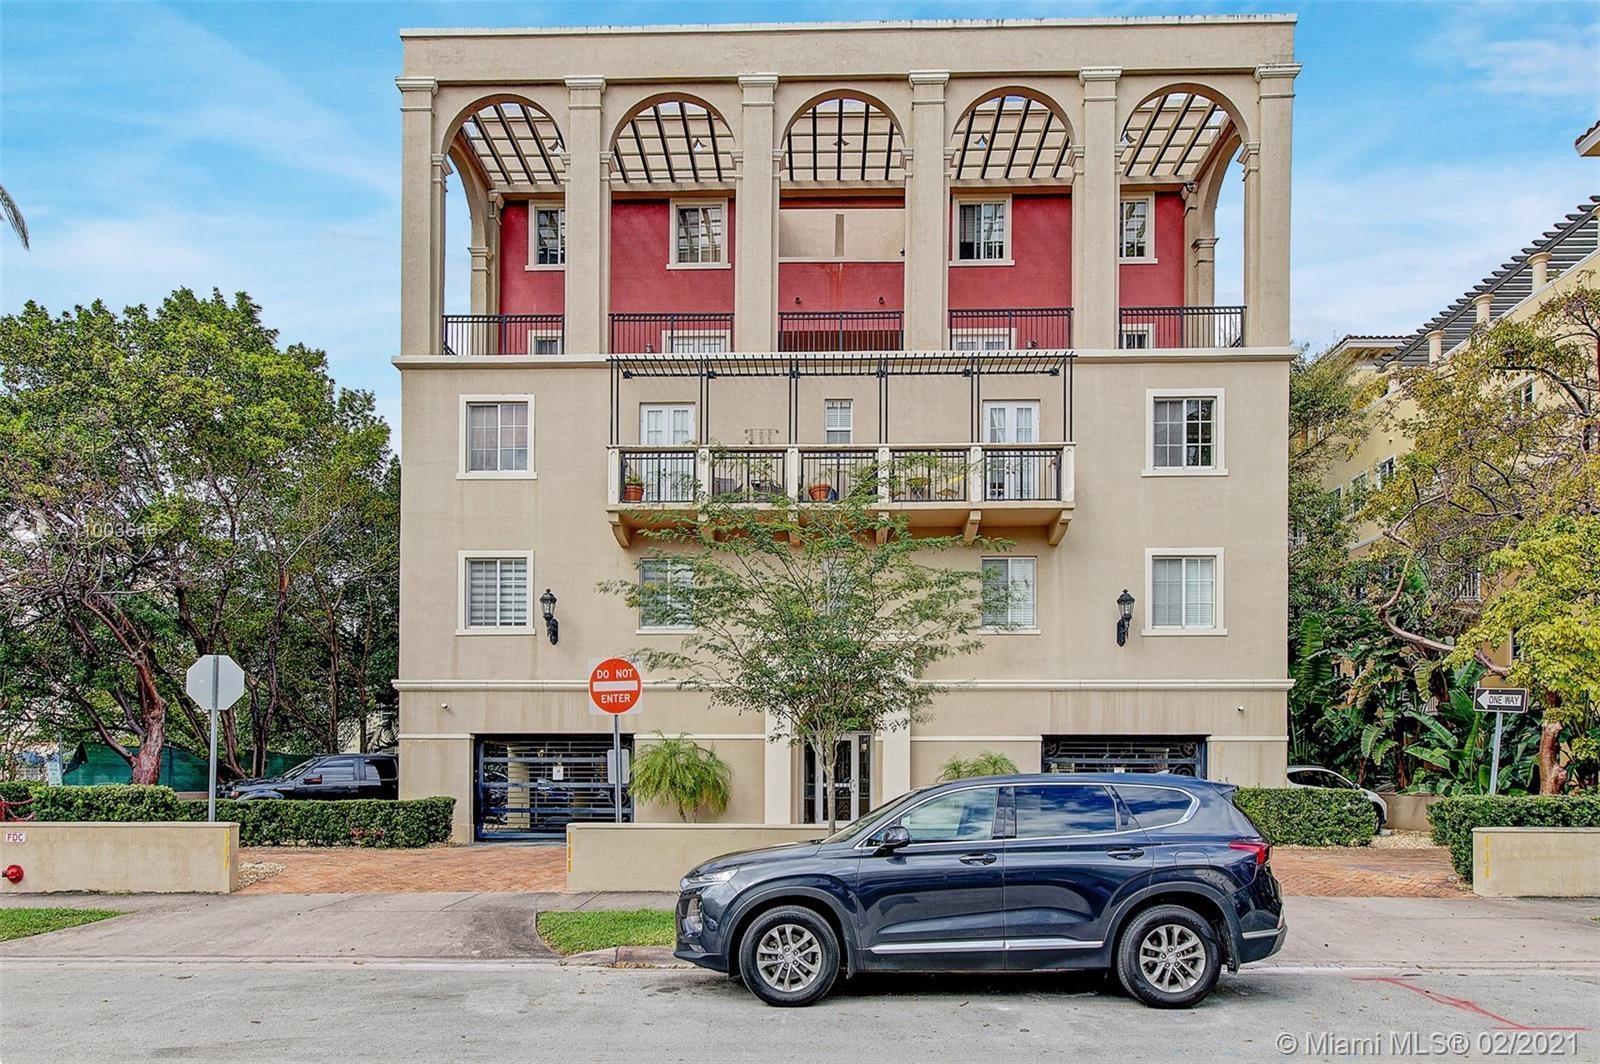 Come see this spacious 3 bedroom 2 bath Coral Gables condo! The unit offers 1450 sq.ft. of generous